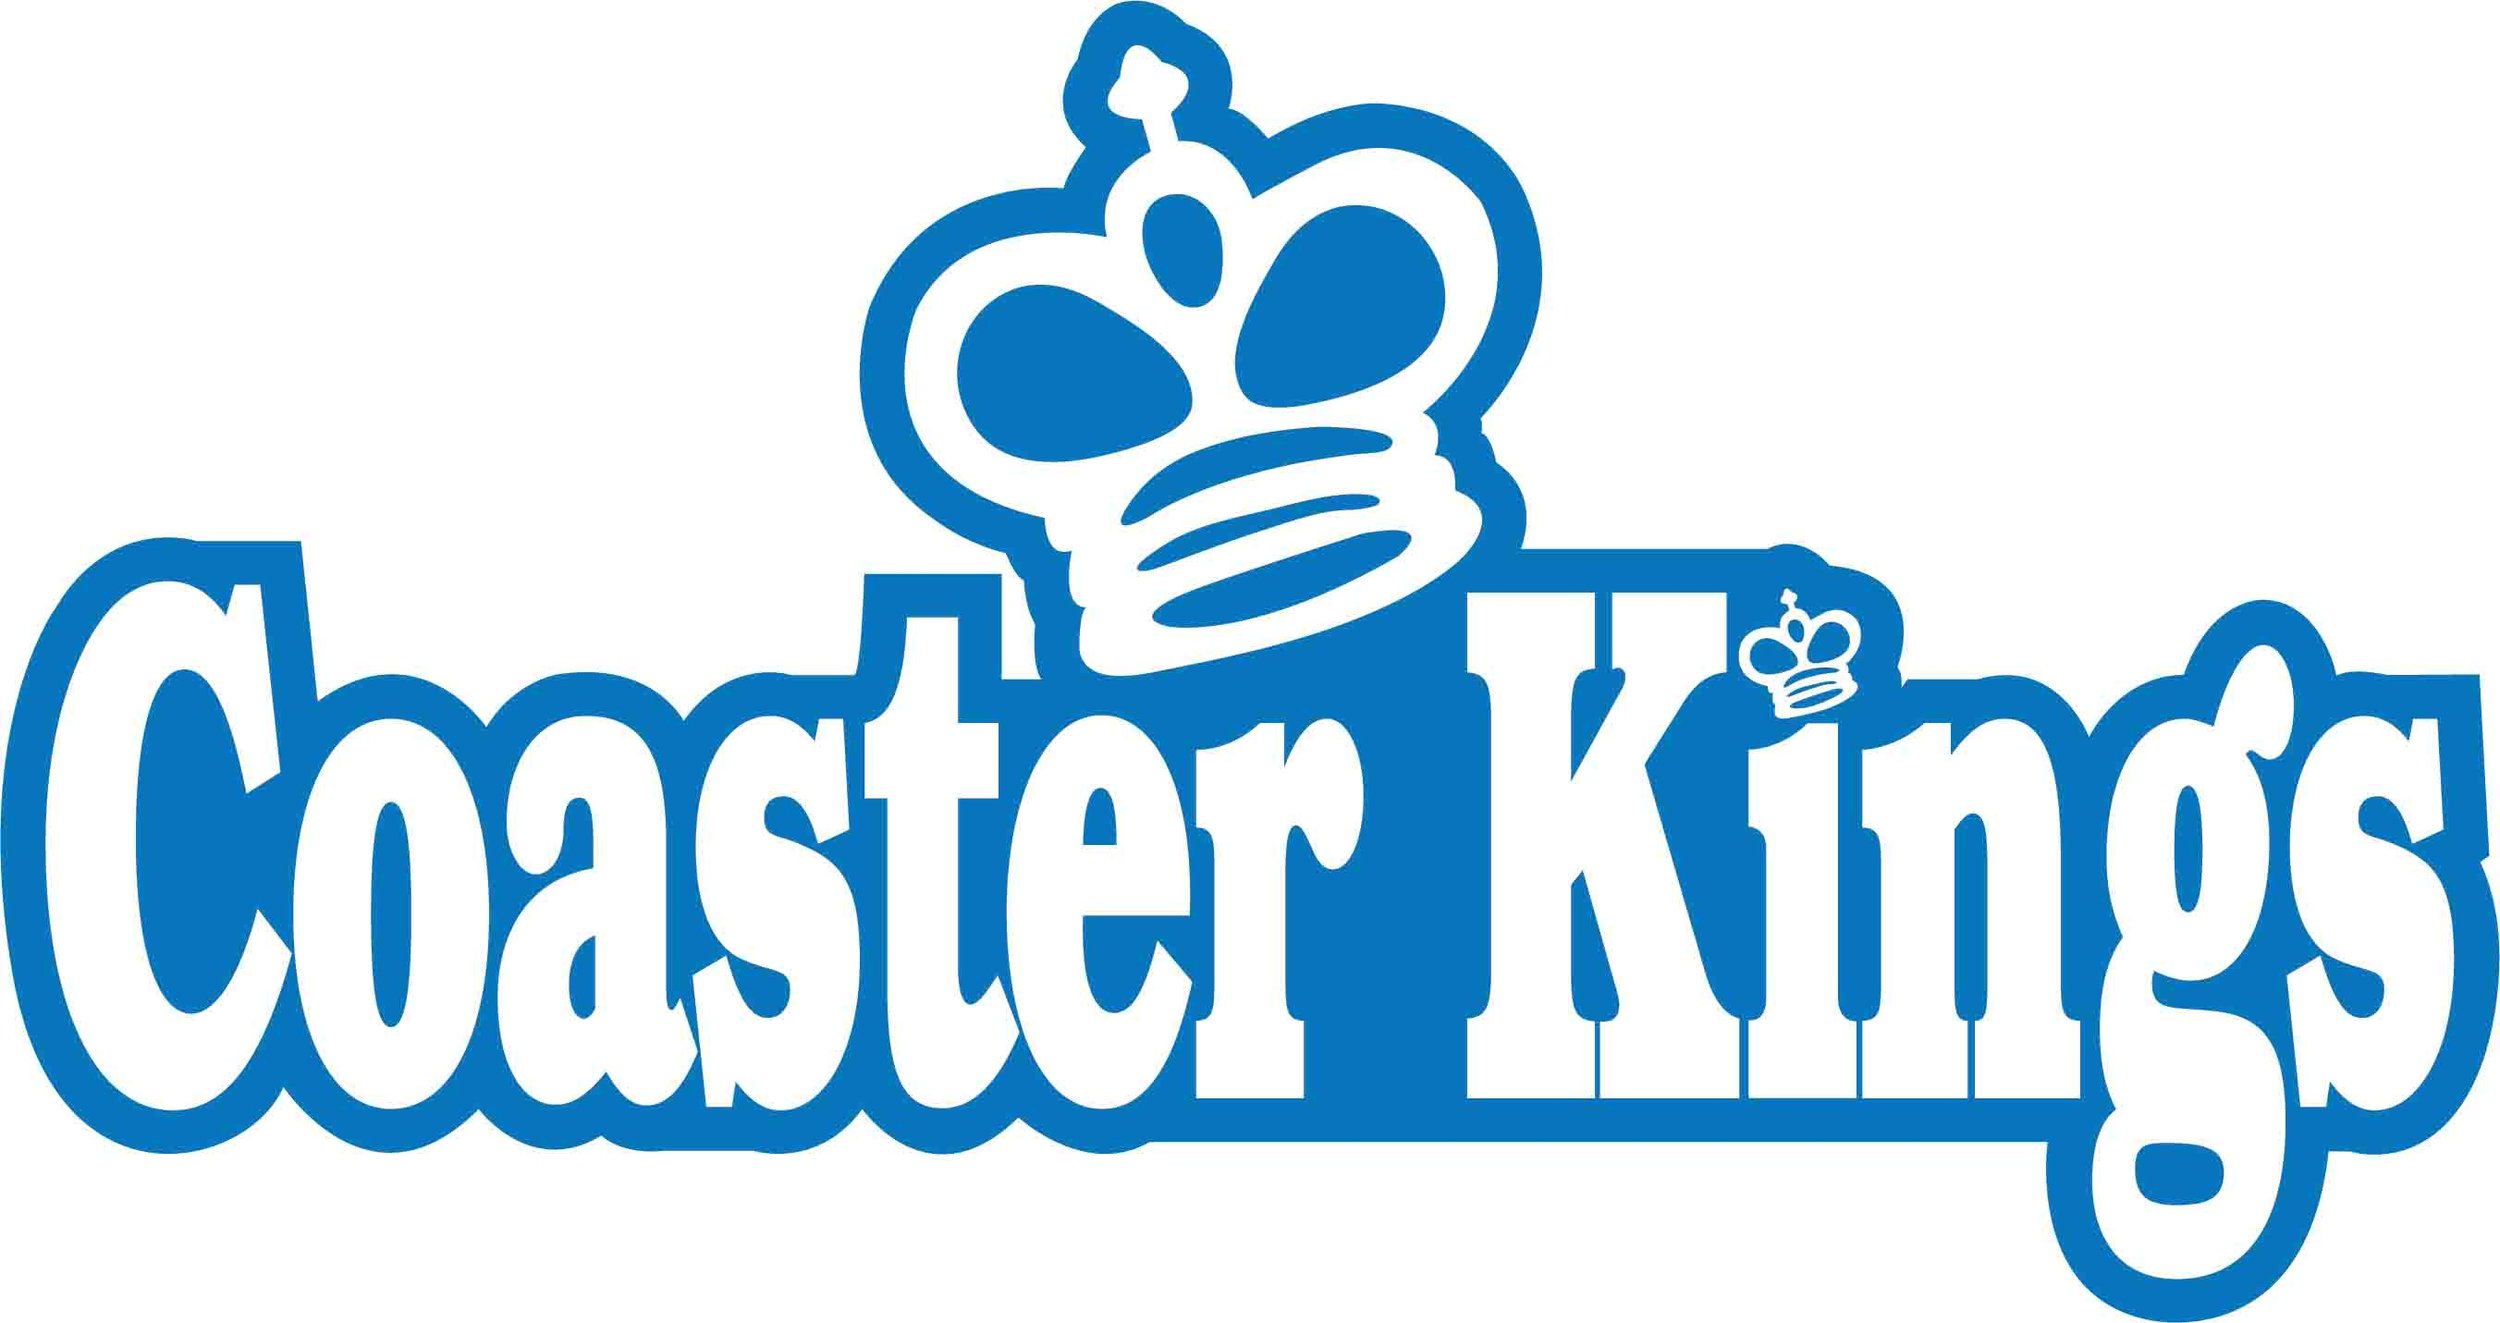 coaster-kings-logo.jpg